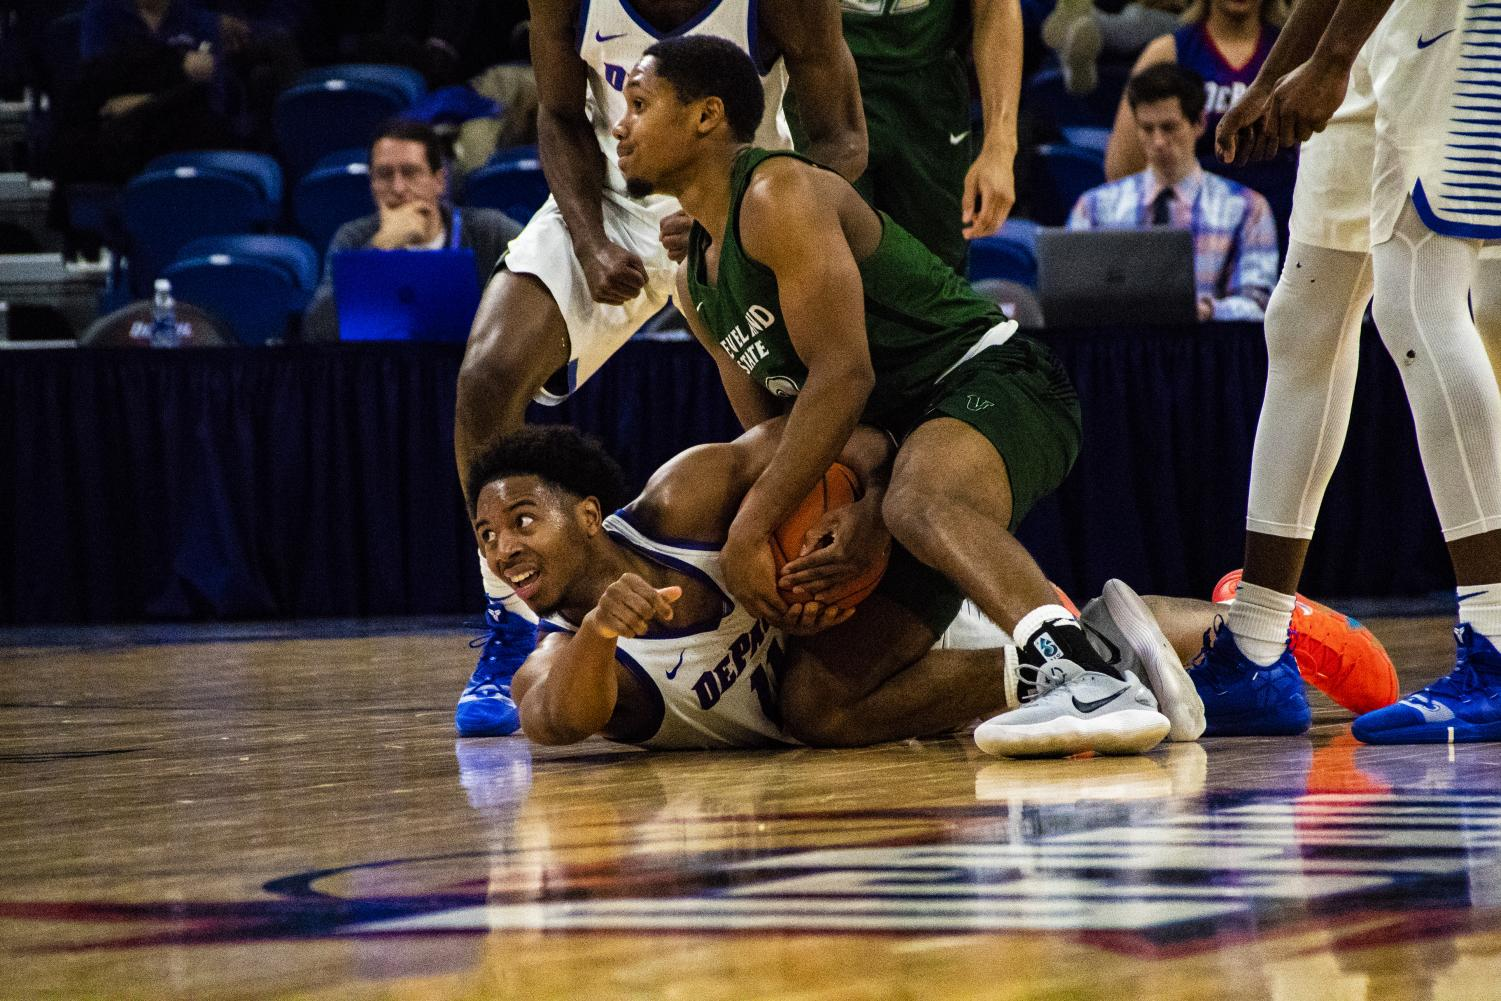 DePaul senior Eli Cain dives for a loose ball during the Blue Demons 83-73 win against Cleveland State Wednesday. Richard Bodee I The DePaulia